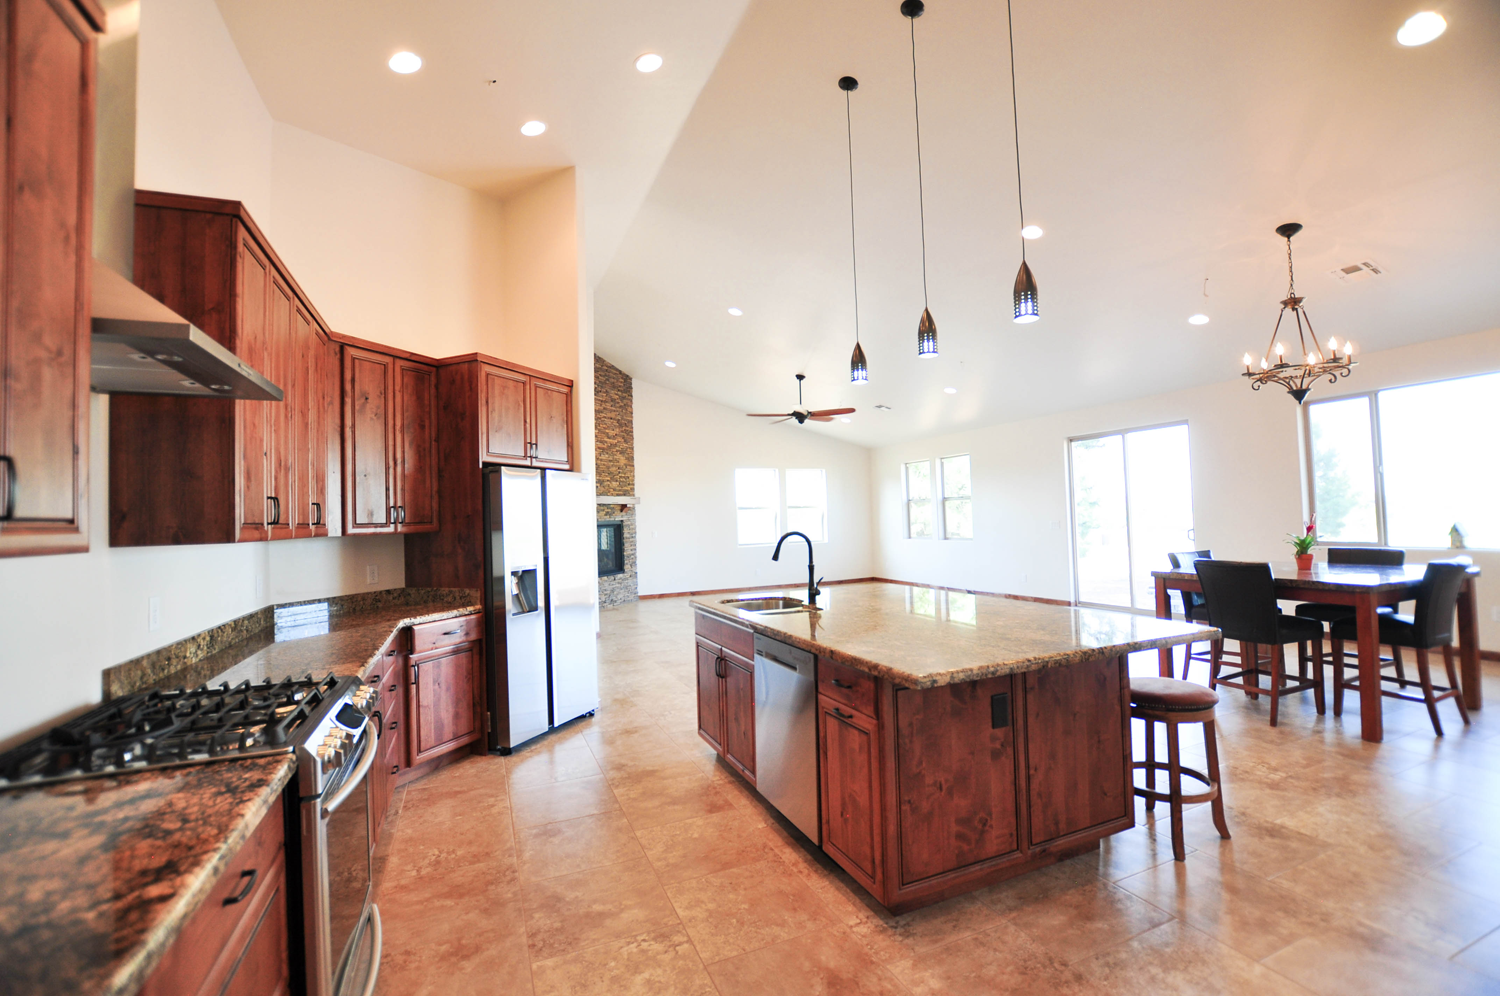 Kitchen - Dining - Living